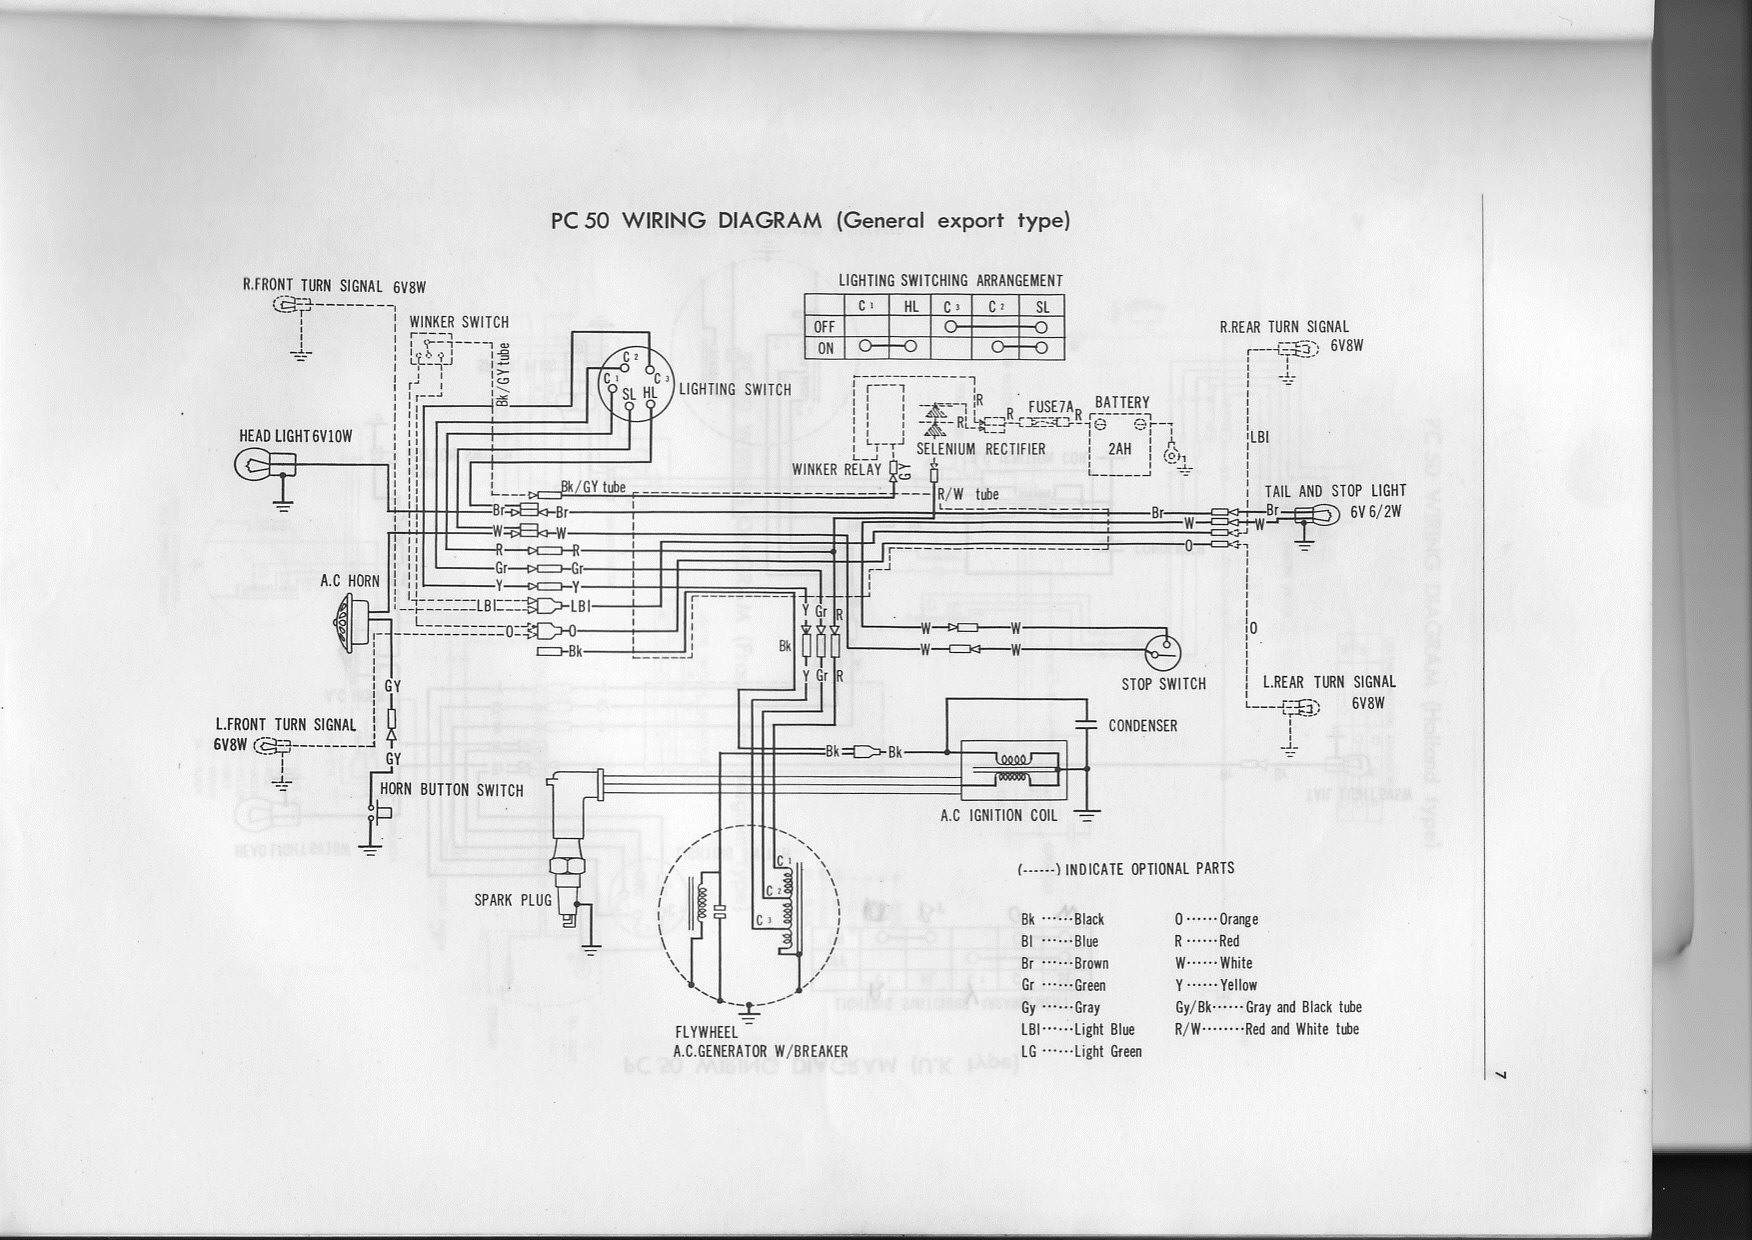 Wiring Diagram Pc Icon